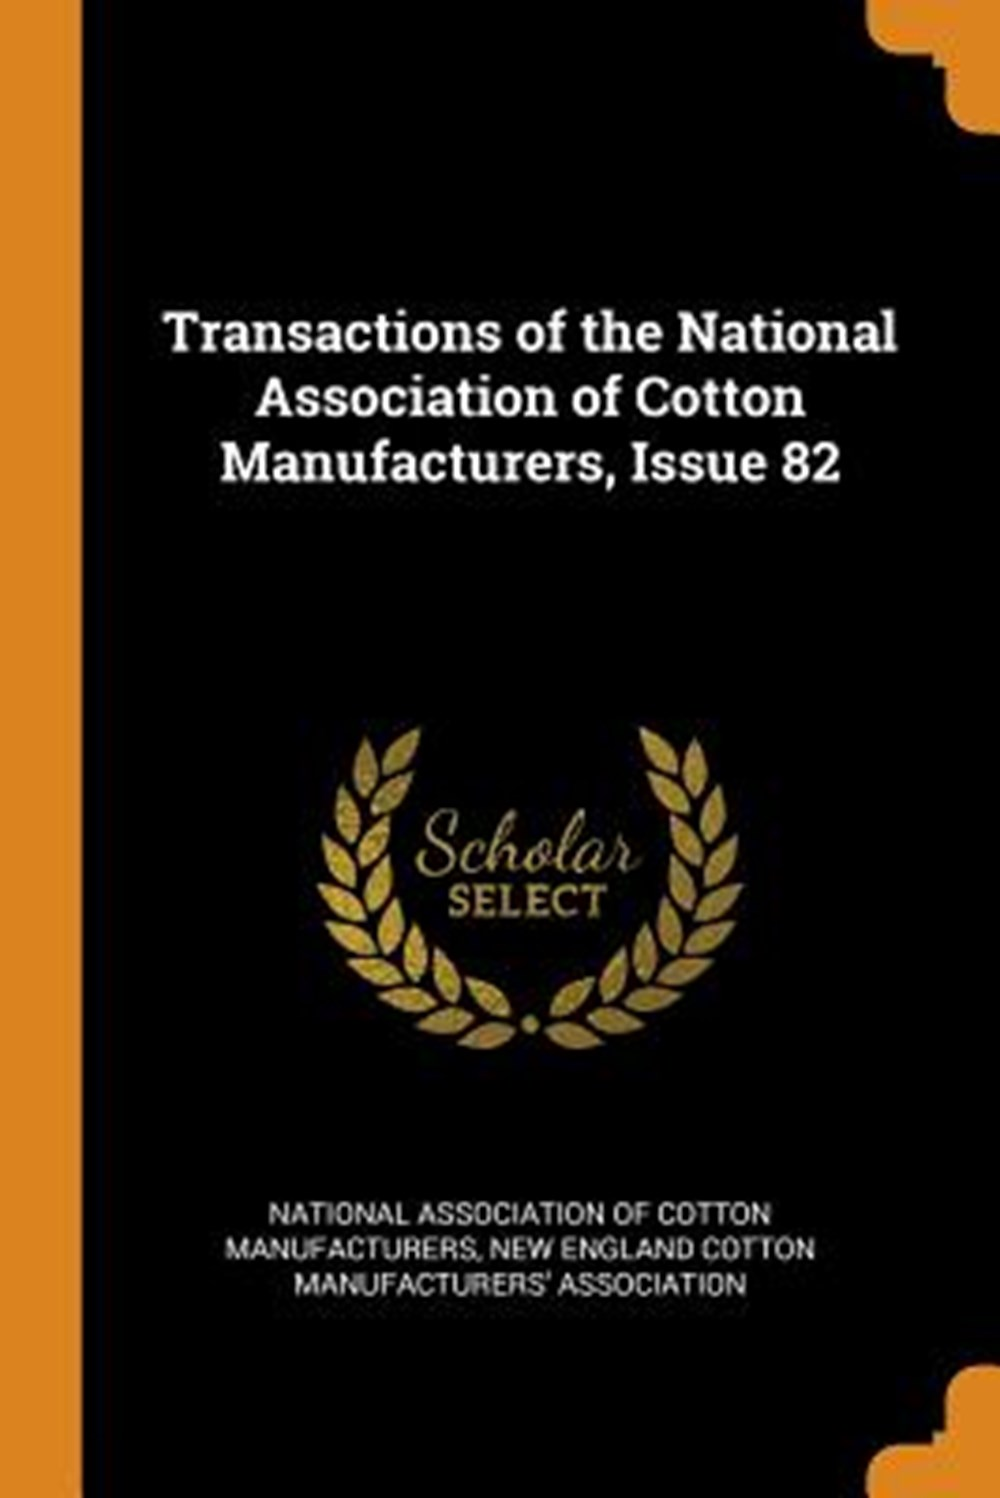 Transactions of the National Association of Cotton Manufacturers, Issue 82